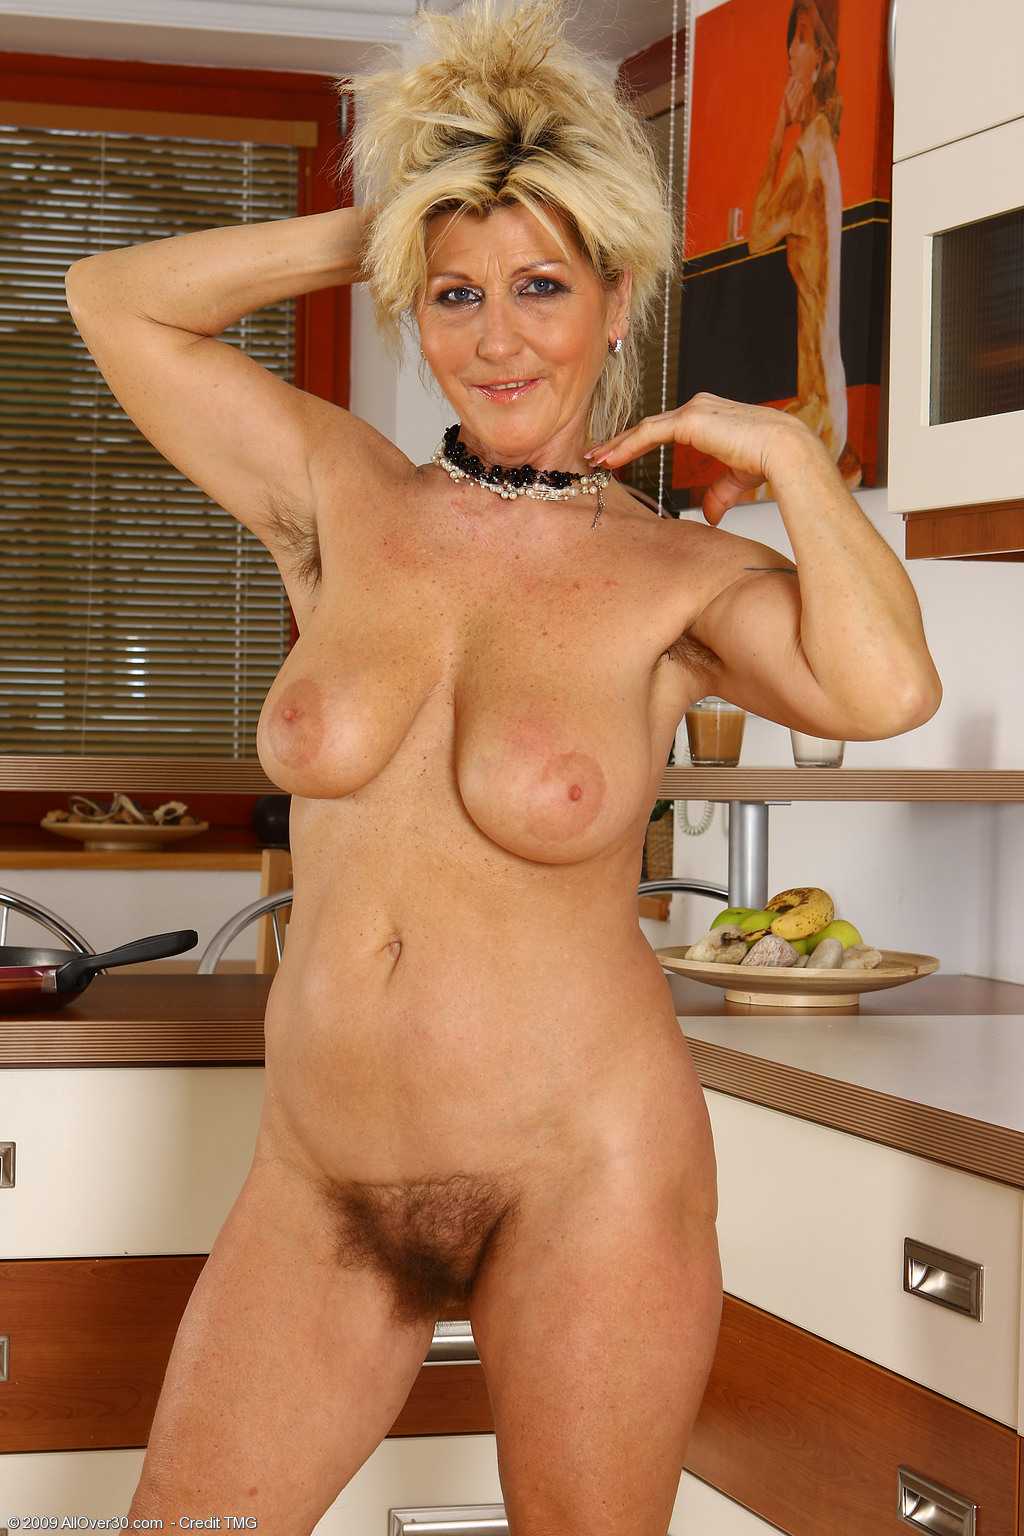 All Over 50 Nude Pics 52 year old berna exclusive milf pictures from   free hot